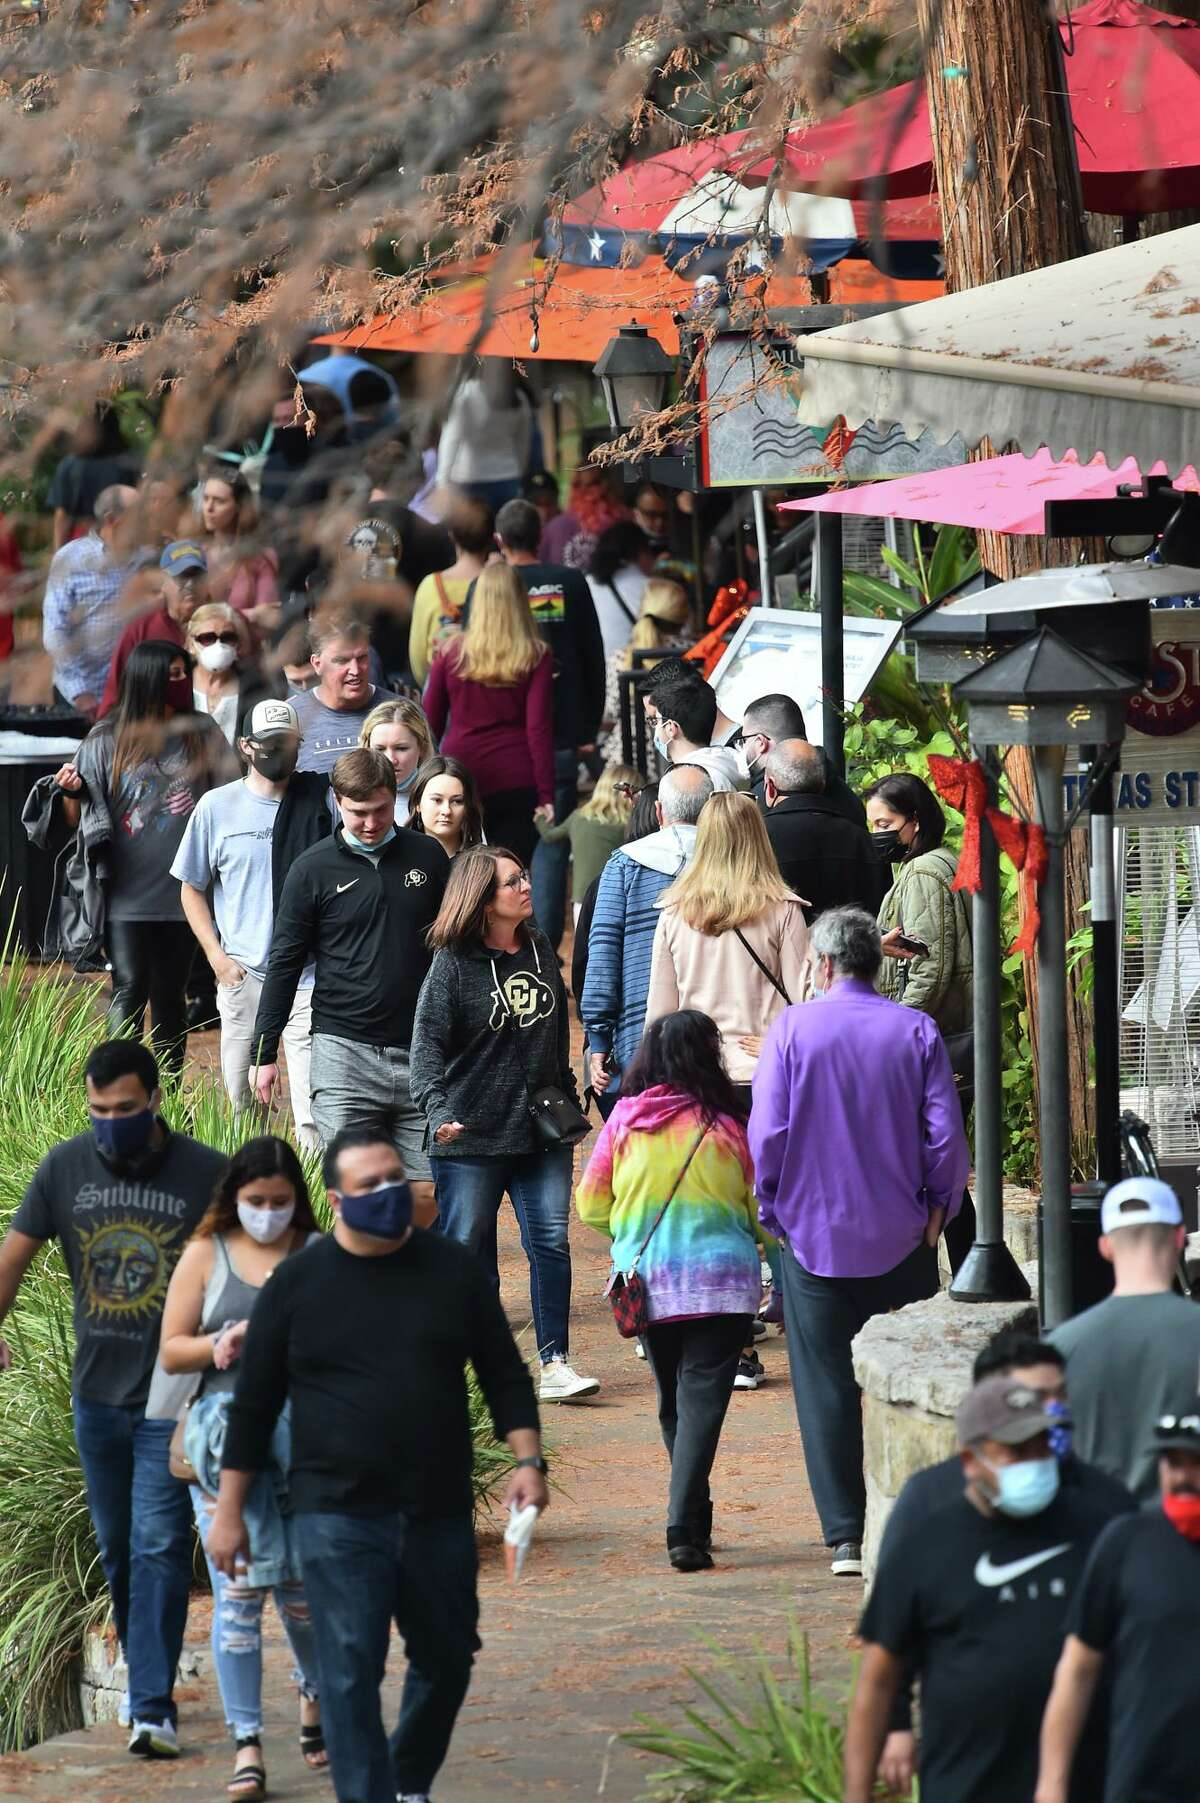 People crowd along the Riverwalk Tuesday prior to the Alamo Bowl. Visitors are asked to wear their masks as part of COVID-19 protection protocols.